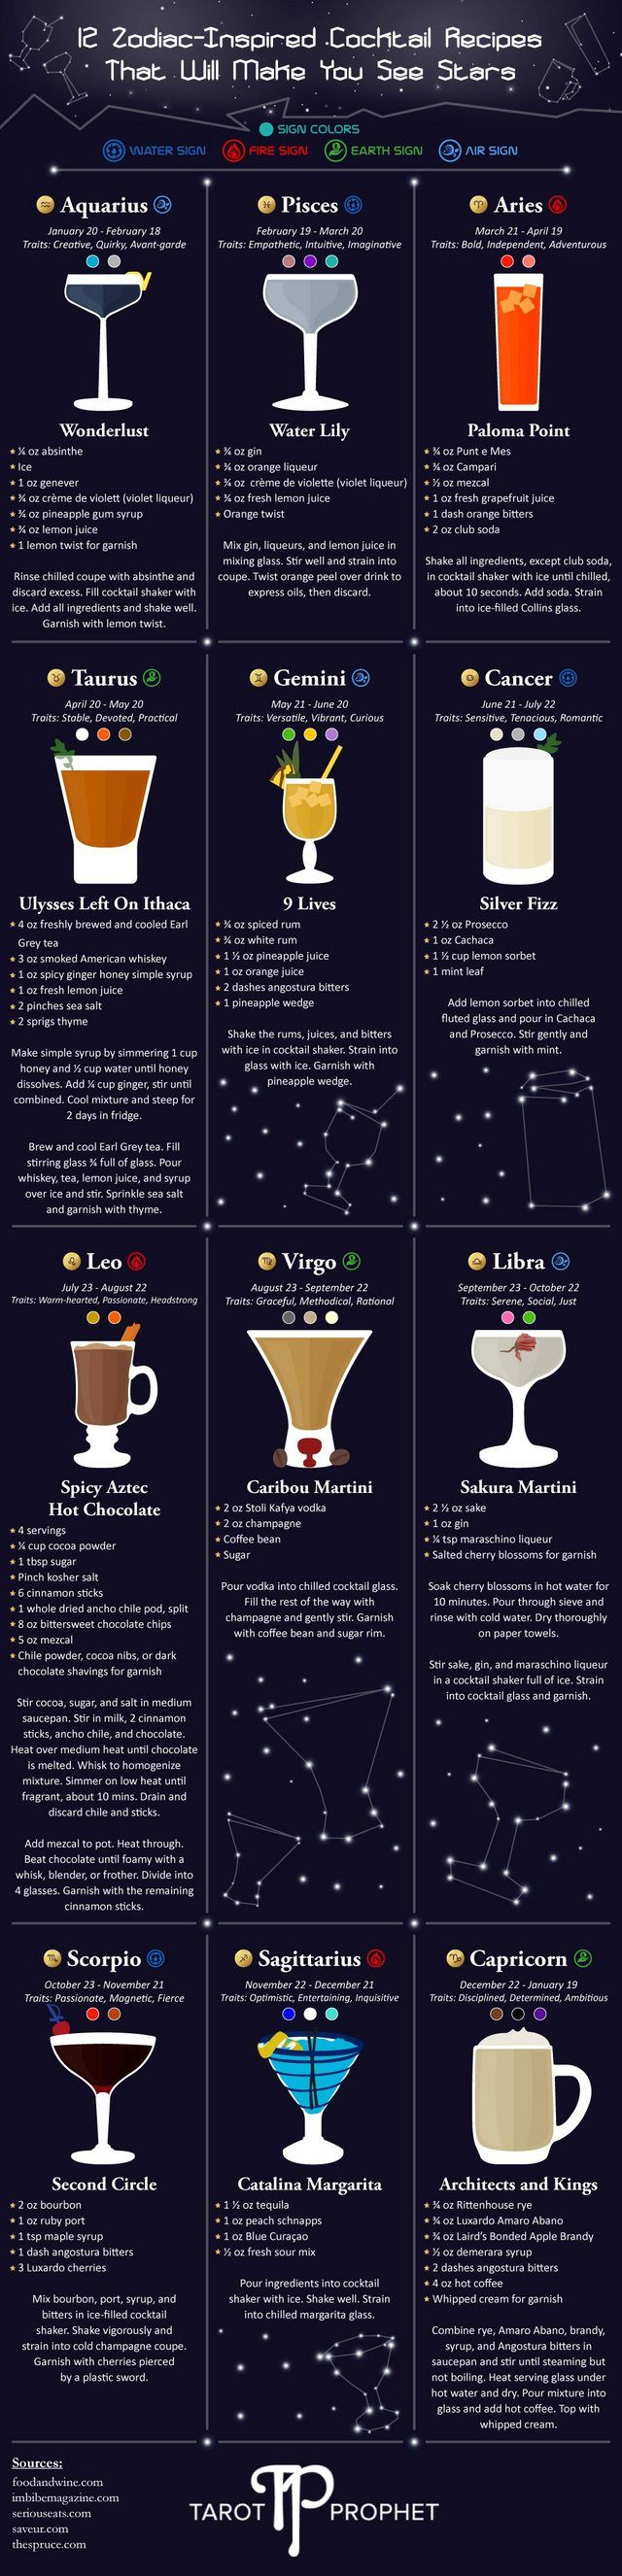 Cocktail recipes inspired by astrology signs... I'm a Cancer.. my drink sucks. - Imgur